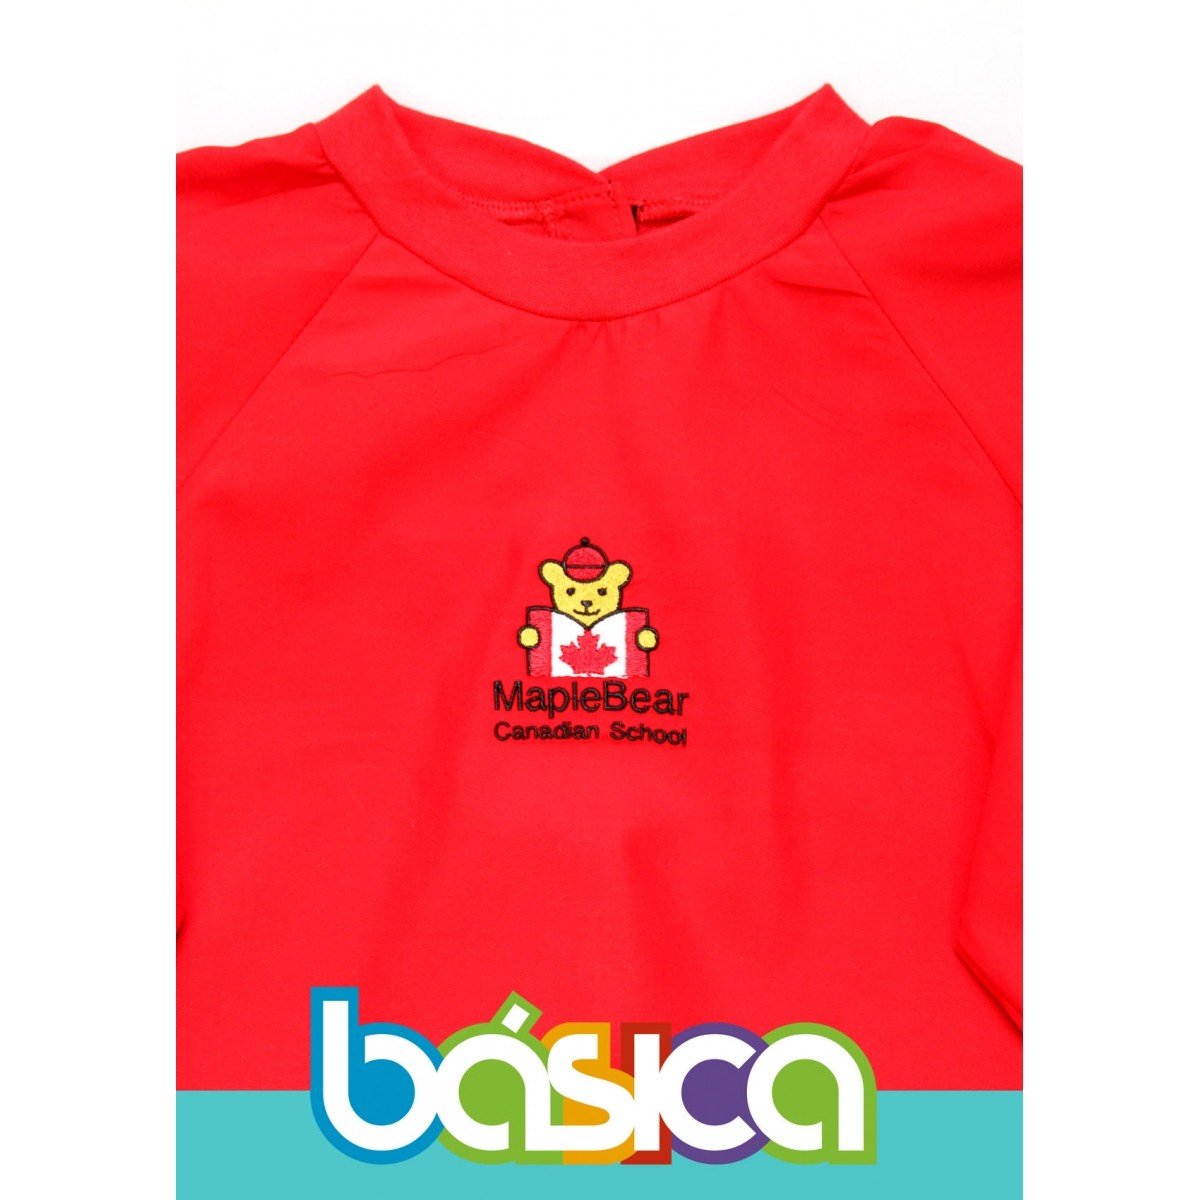 Avental Uniforme Maple Bear Infantil  - BÁSICA UNIFORMES